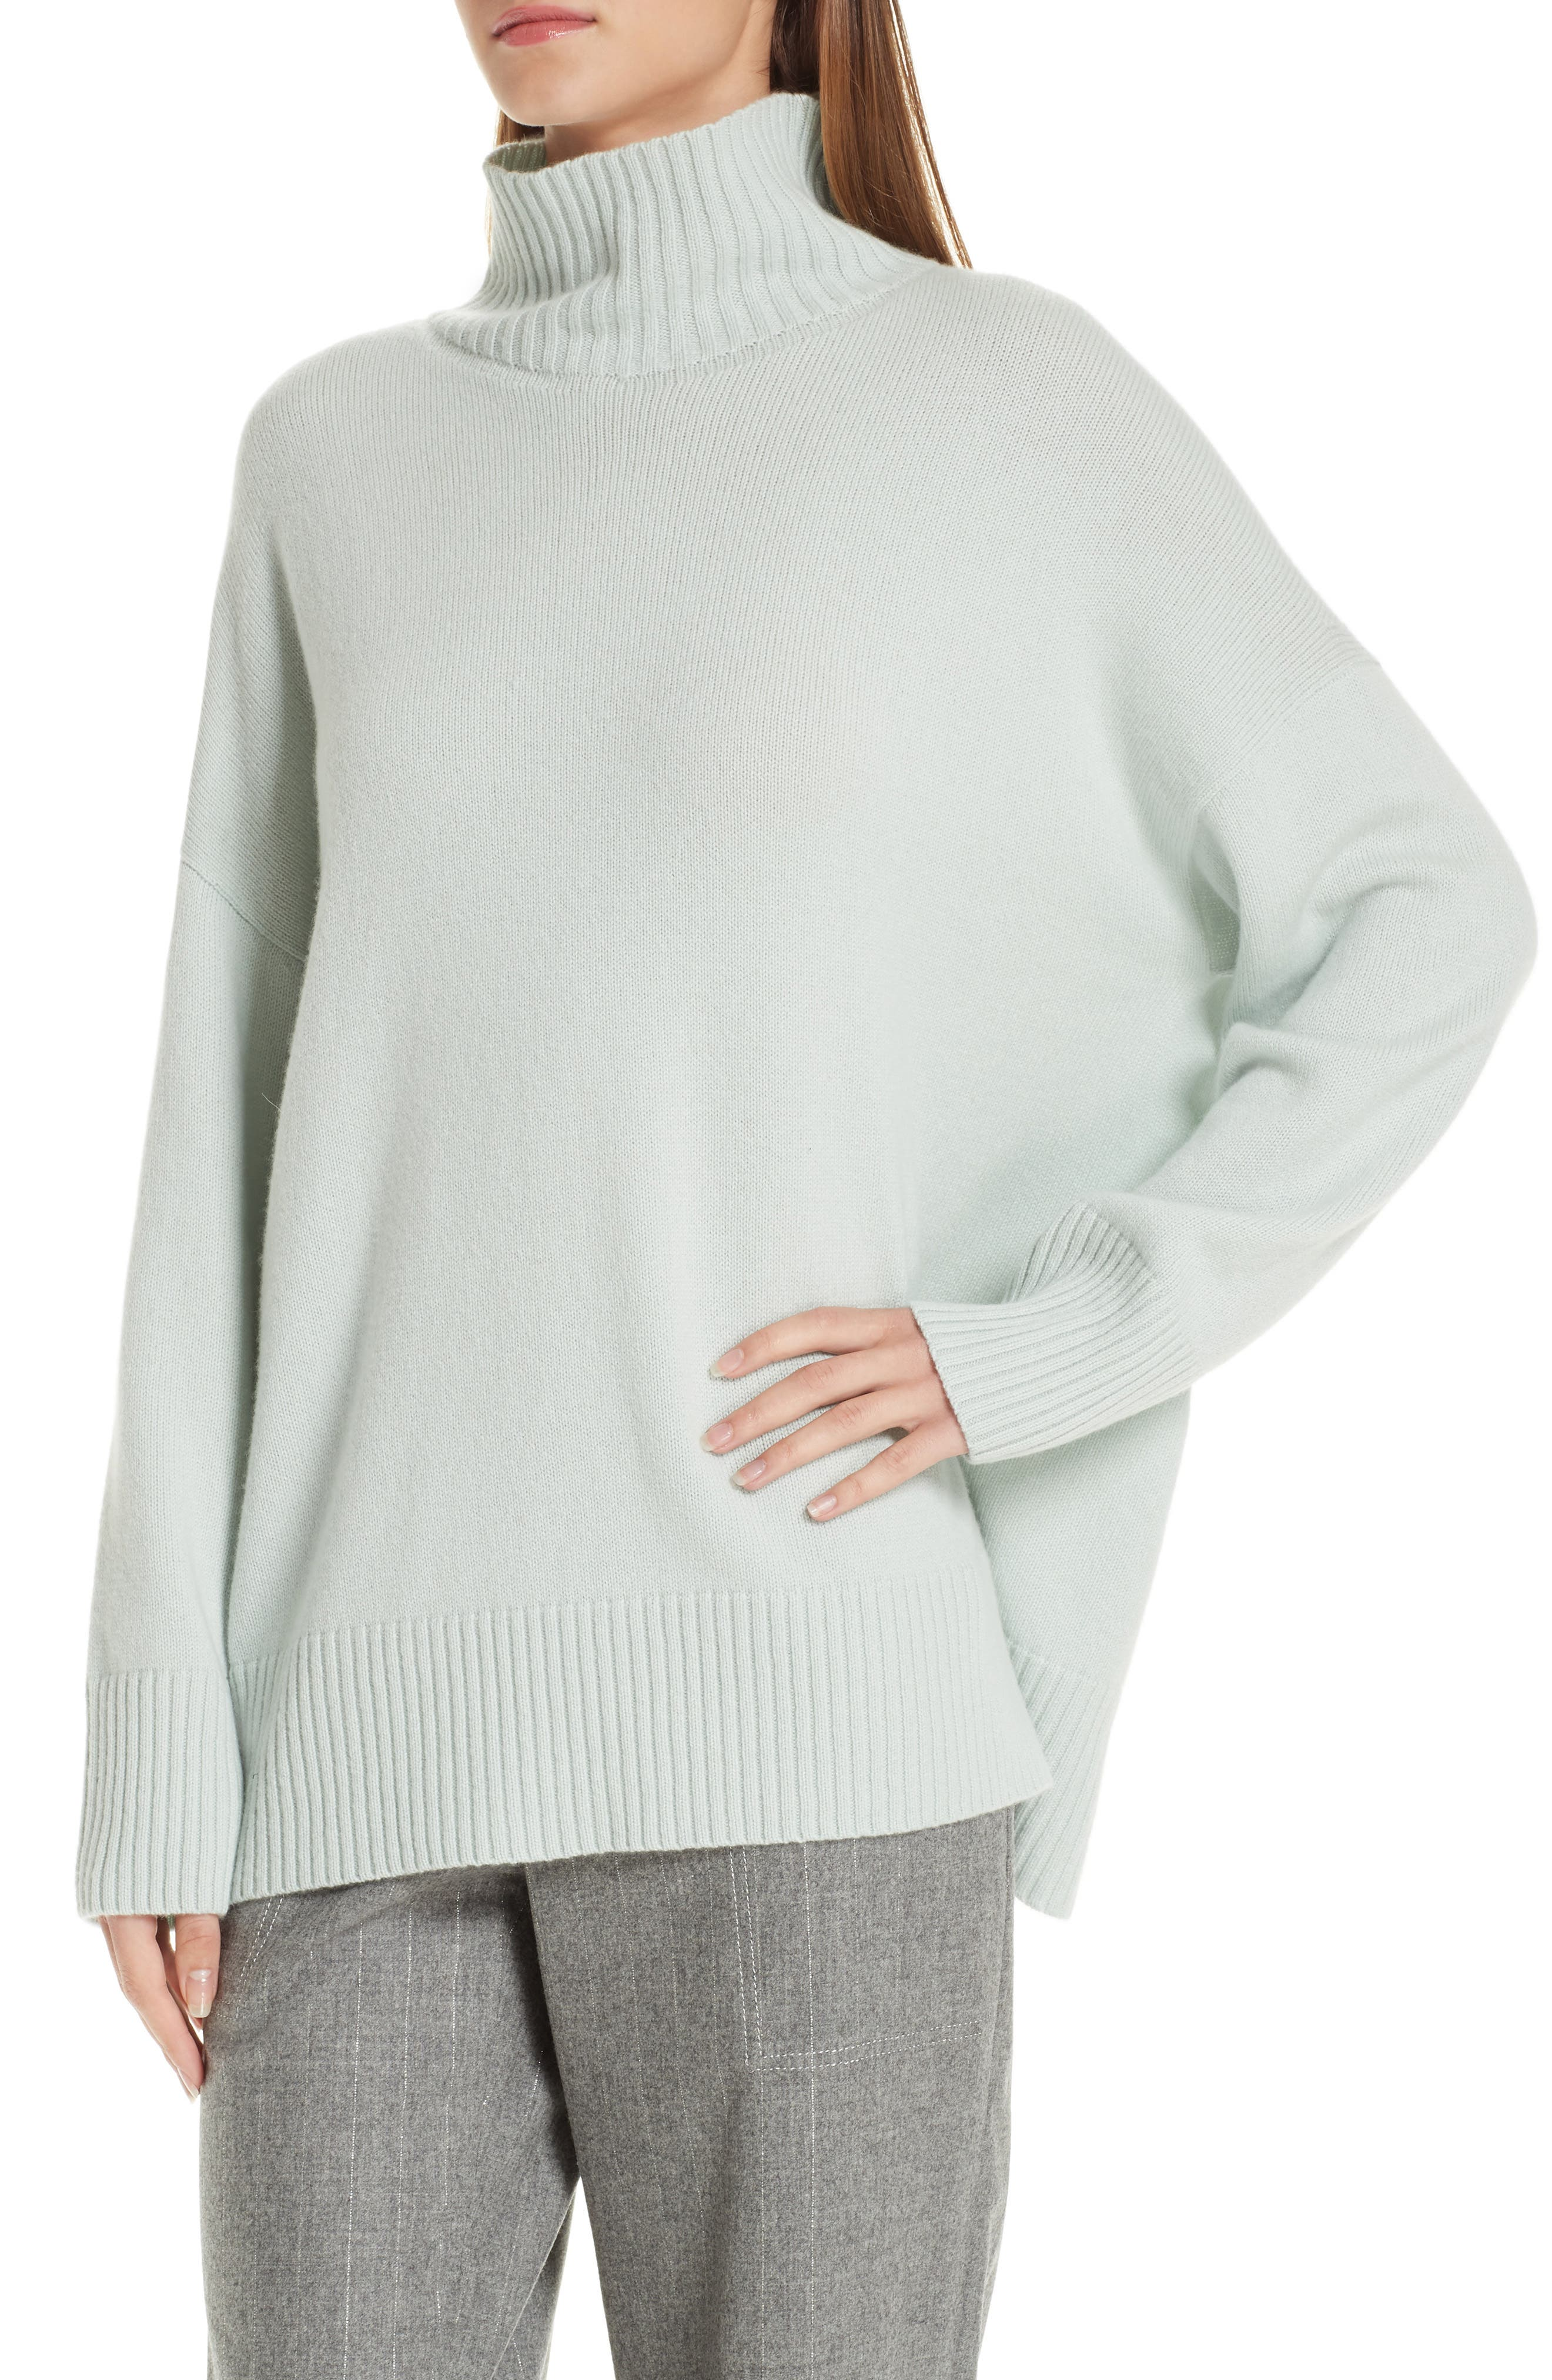 LAFAYETTE 148 NEW YORK,                             Relaxed Cashmere Turtleneck Sweater,                             Alternate thumbnail 4, color,                             400